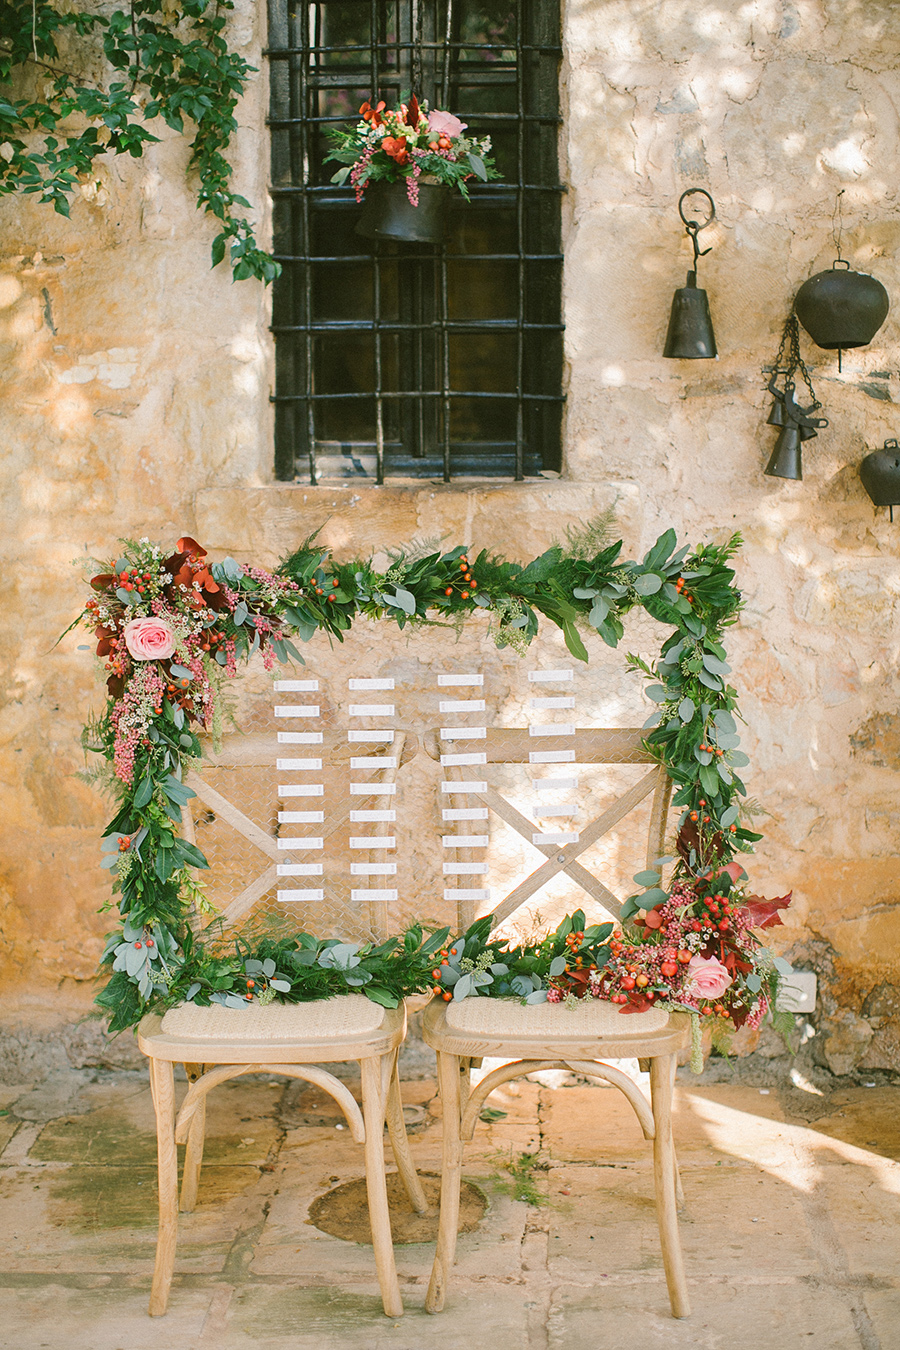 Boho Chic Themed Seating Chart - frame surrounded by flowerls and greenery / styled shoot coordinated by Love 4 Wed / photo by Anna Roussos Photography